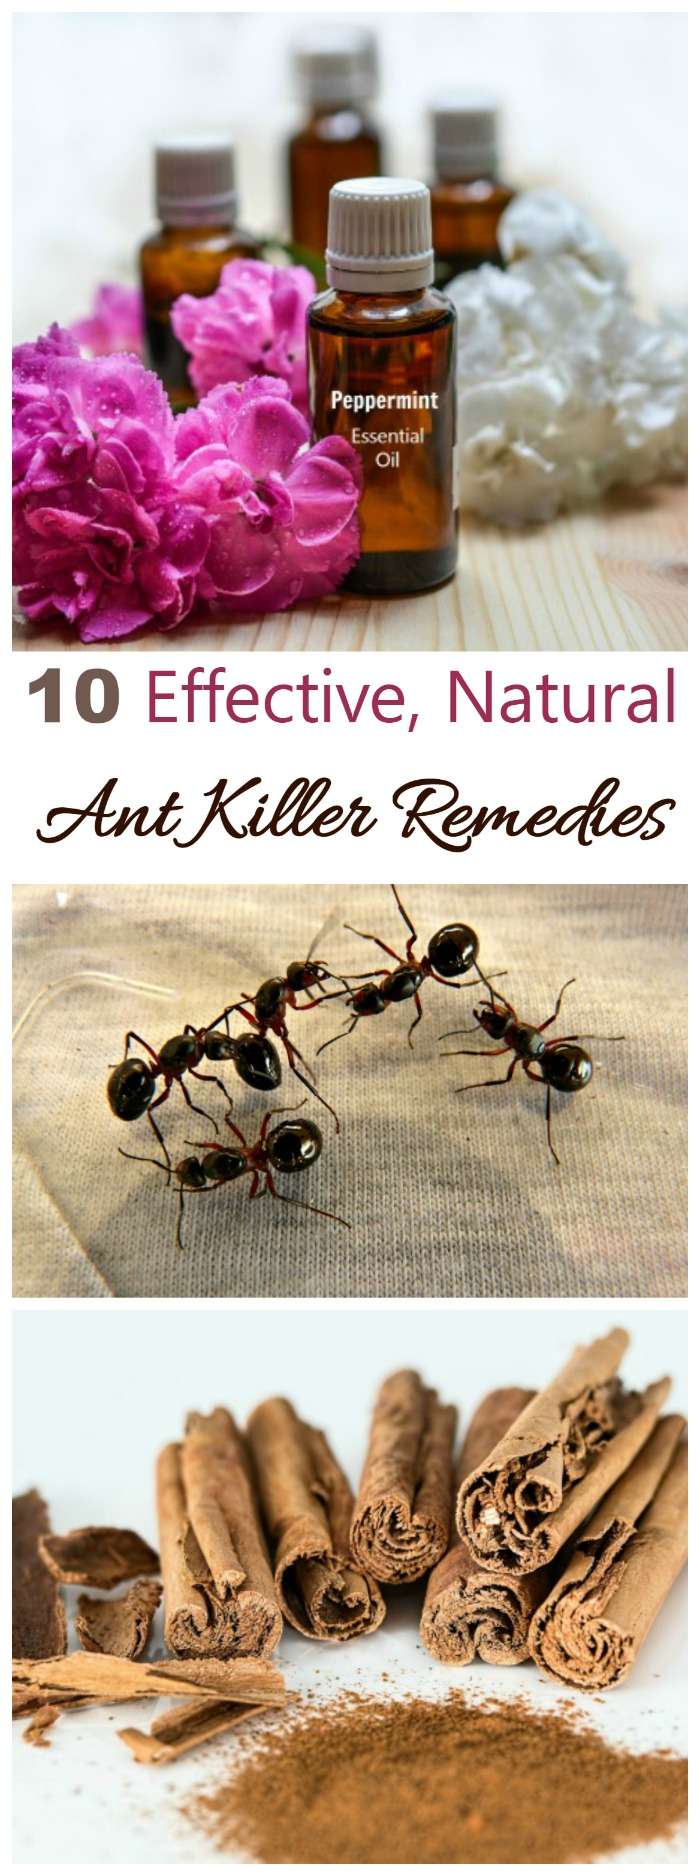 Ant Killer Remedies Natural Ways To Repel Ants Effectively